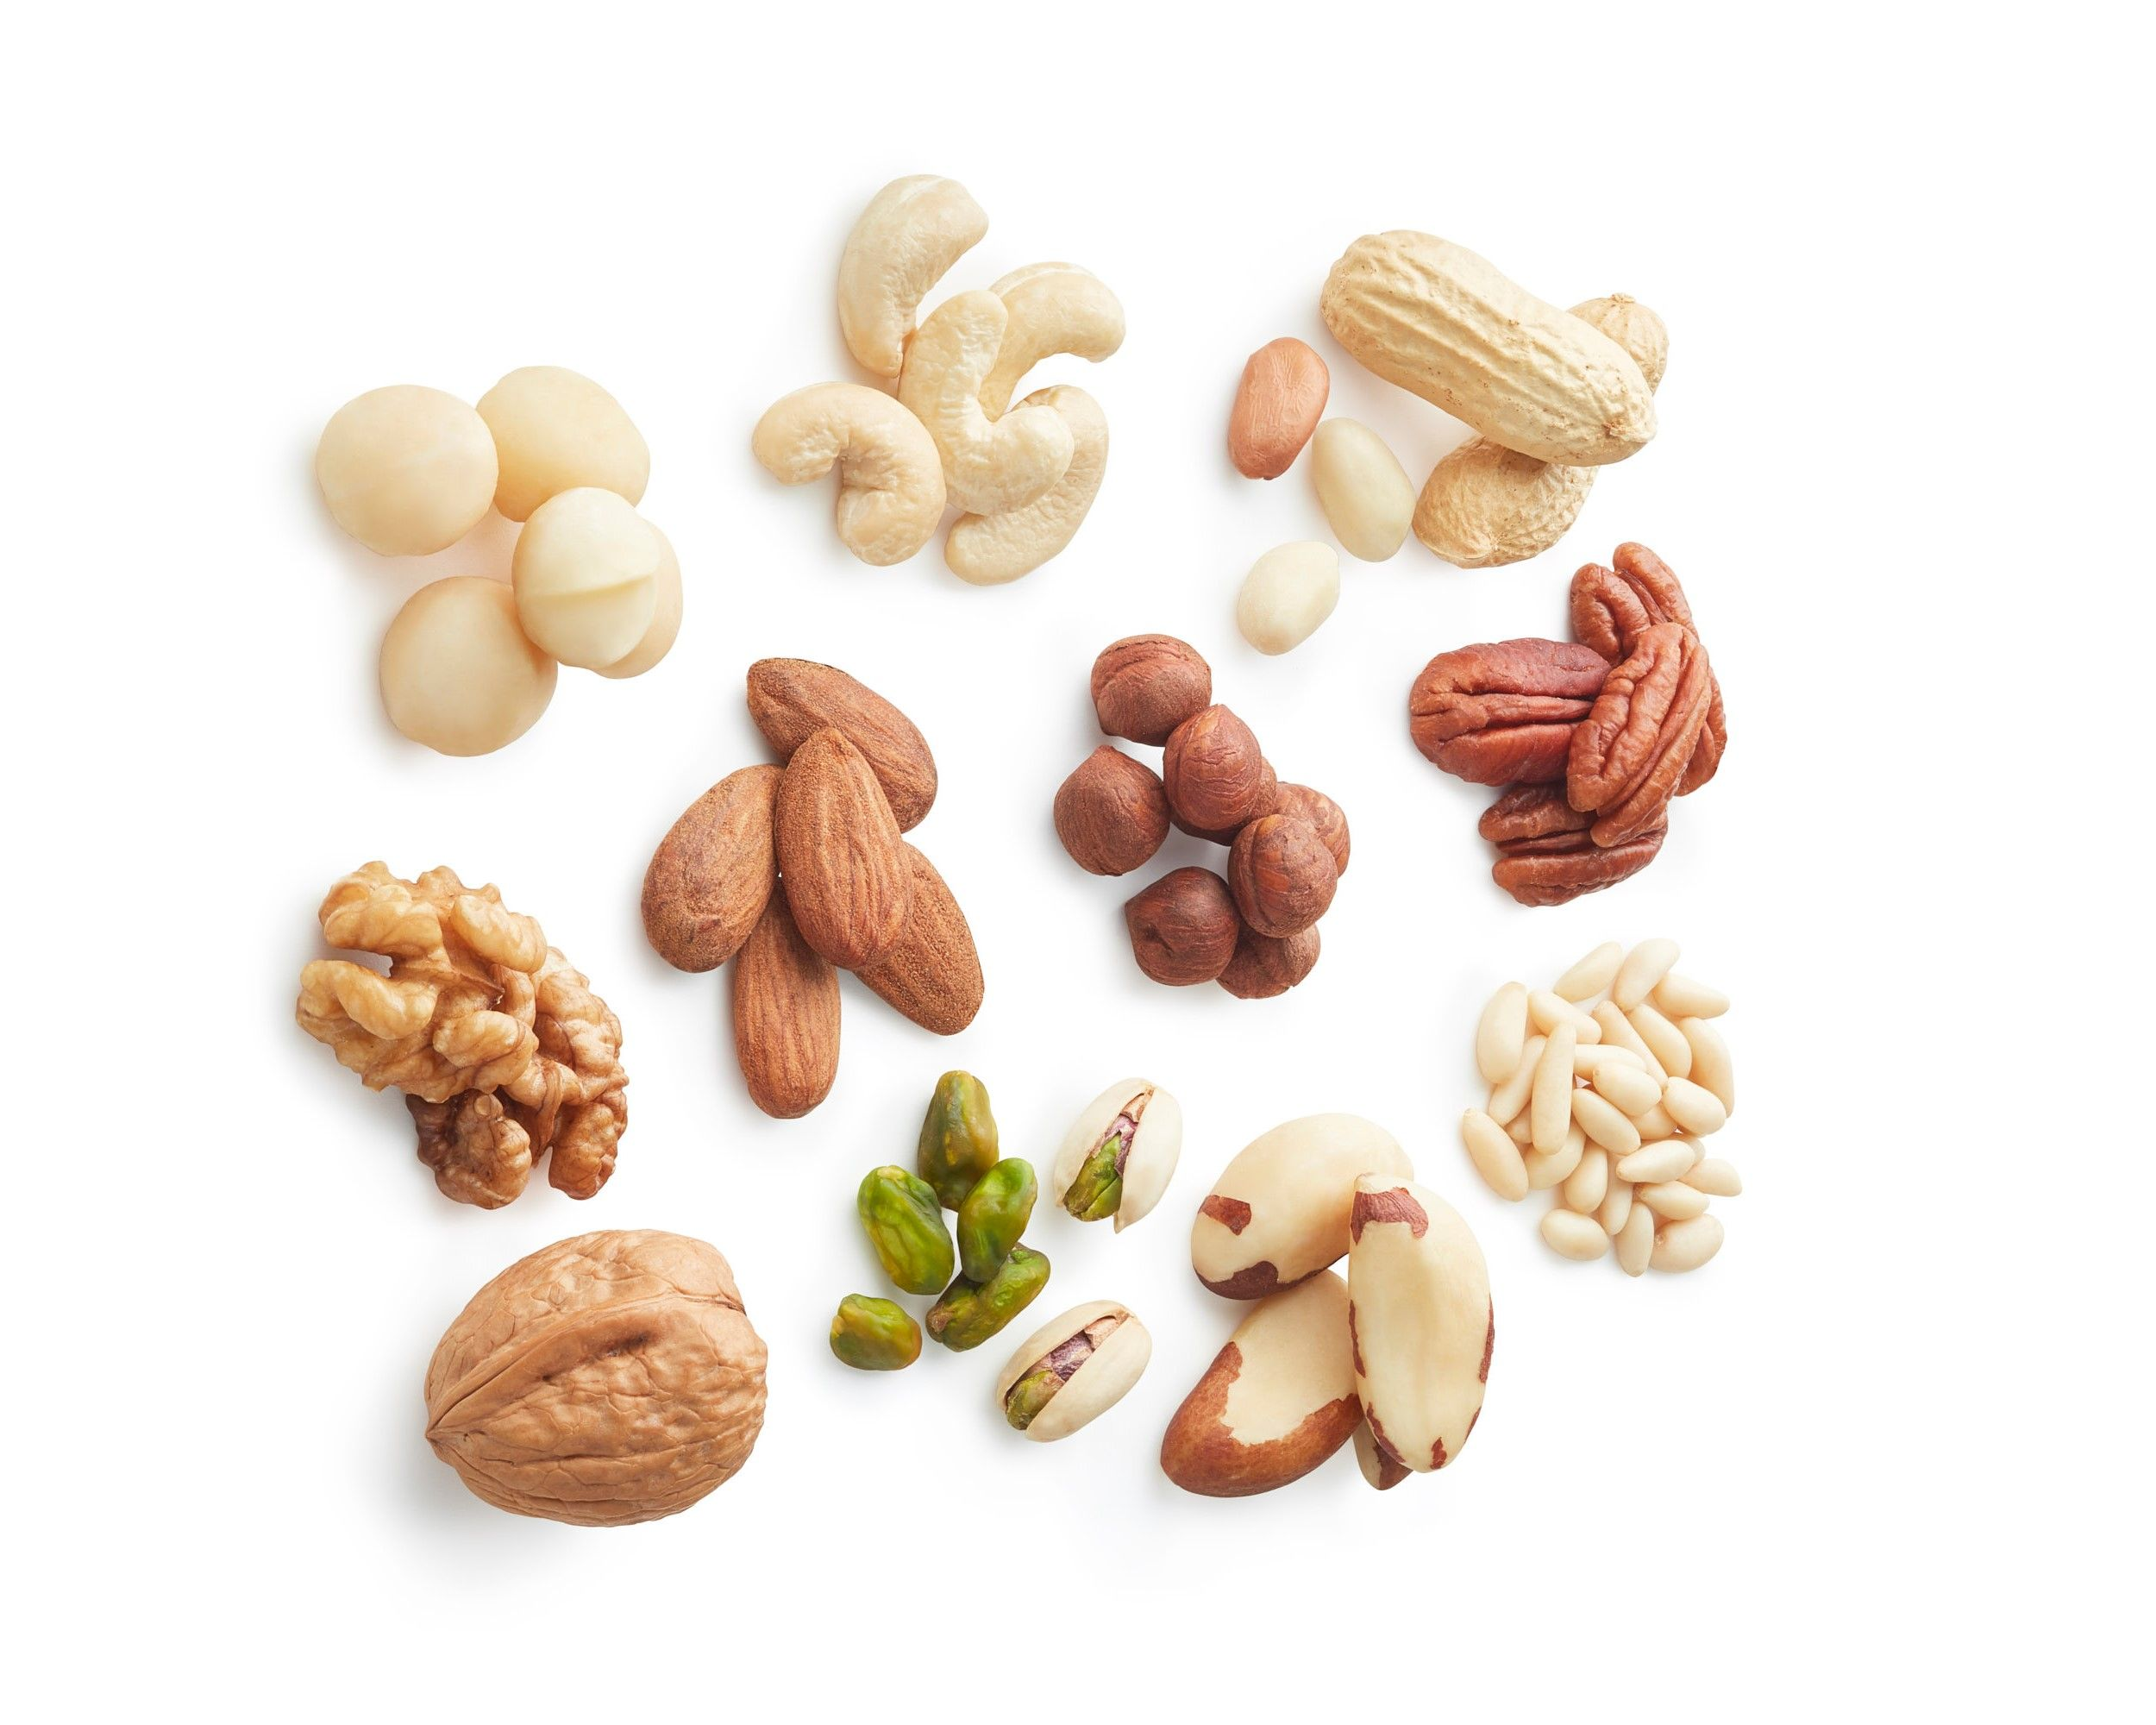 Nut Consumption May Help Prevent Weight Gain